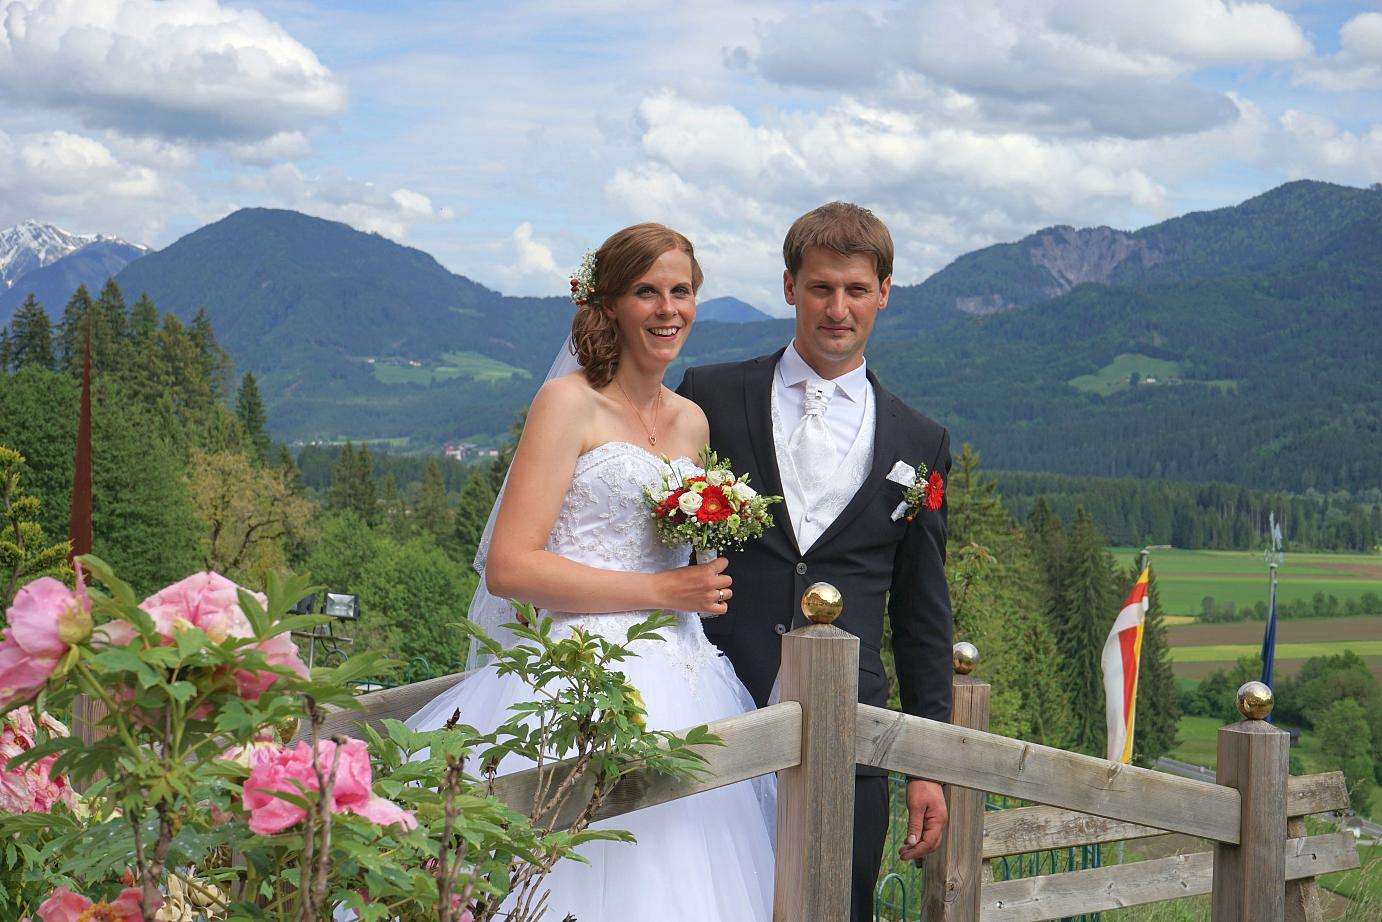 Wedding at Hotel Glocknerhof